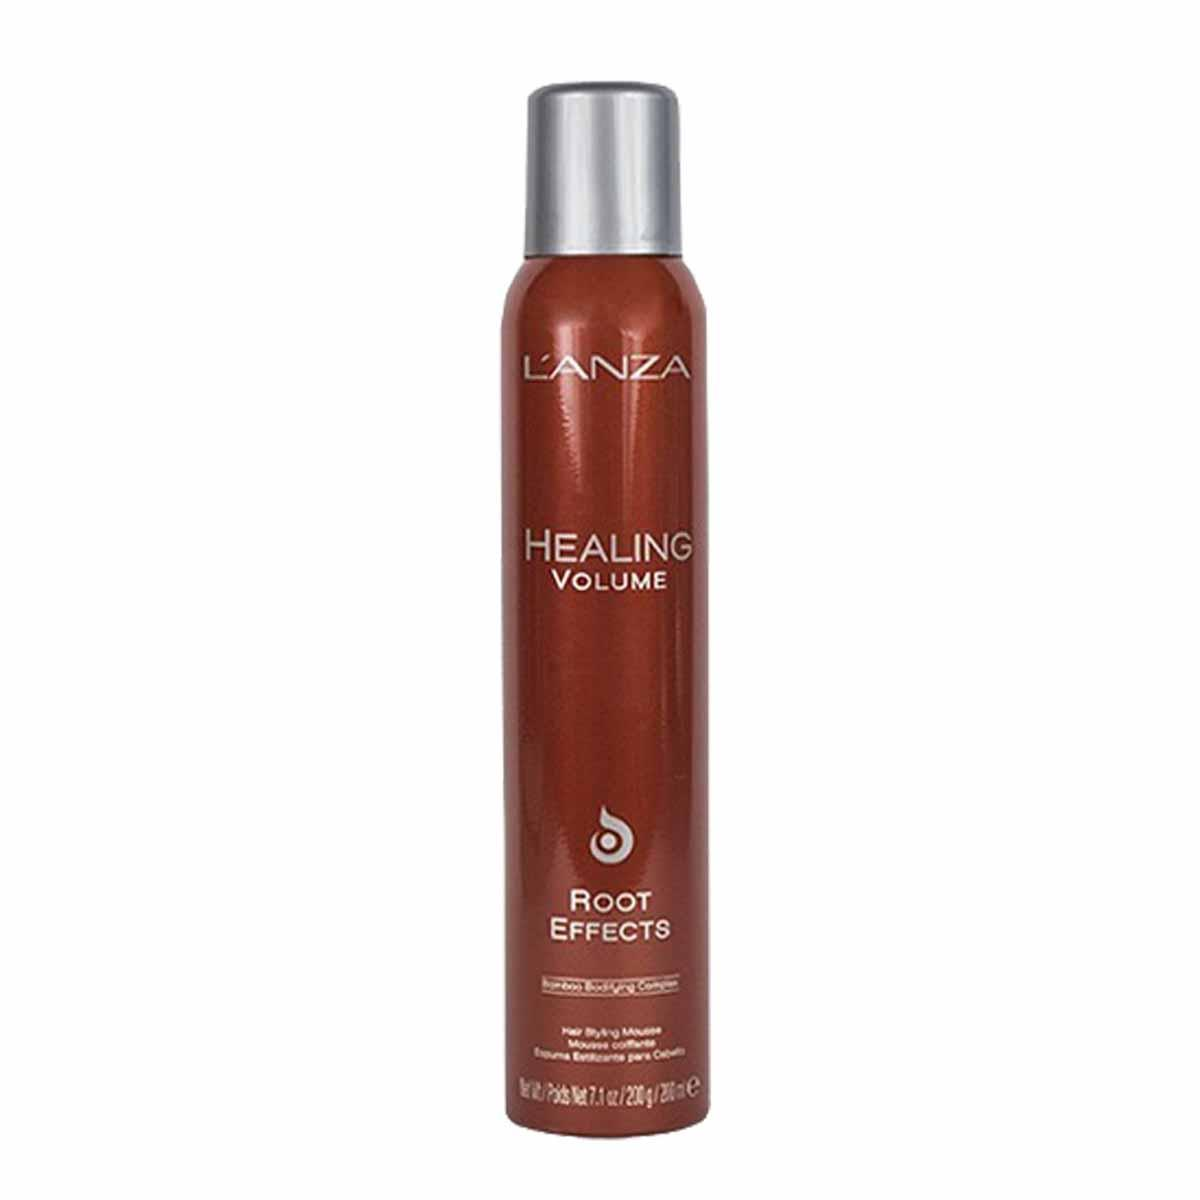 Lanza Healing Volume Root Effects 200ml Cab. Finos